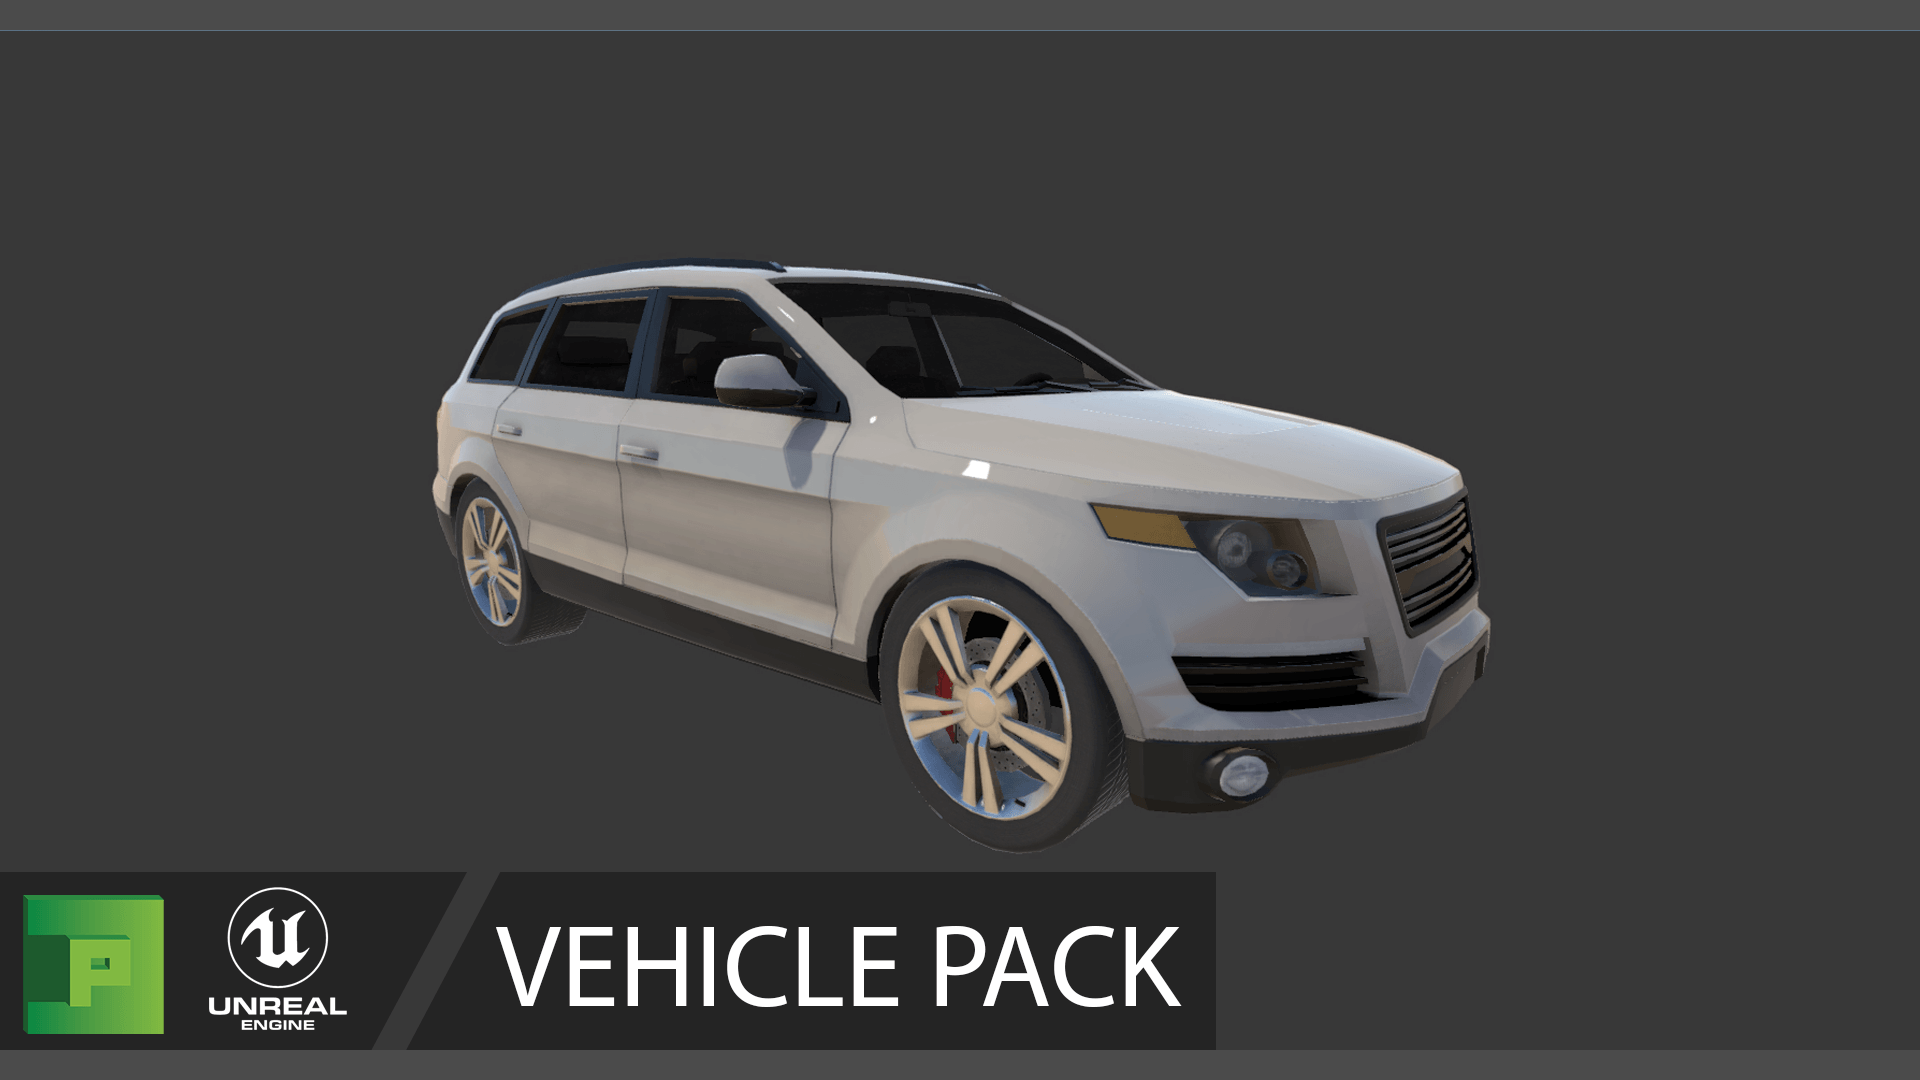 VehiclePack_03